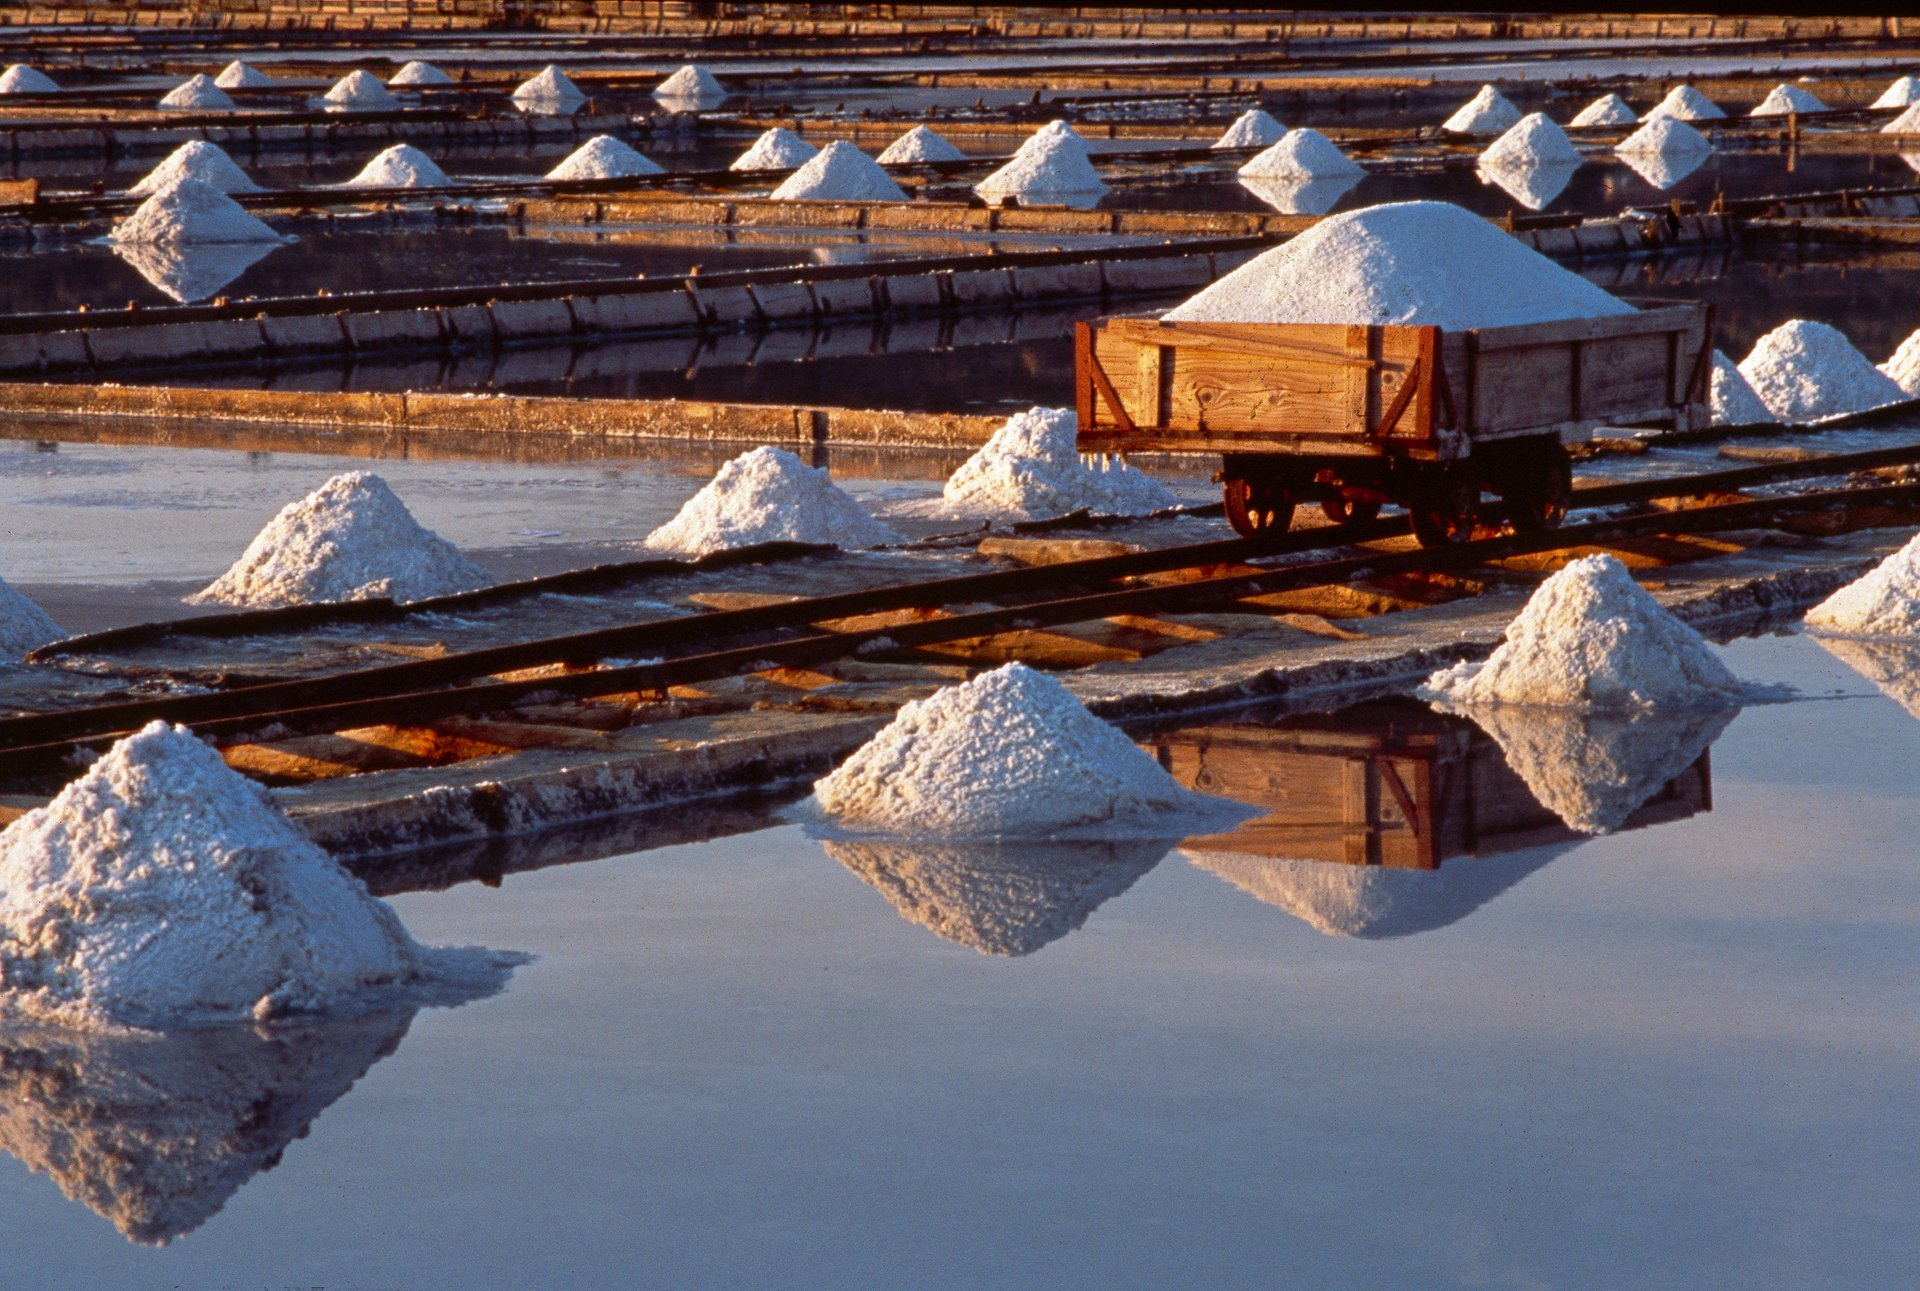 Salt Harvest in Slovenia 2020 - Best Time